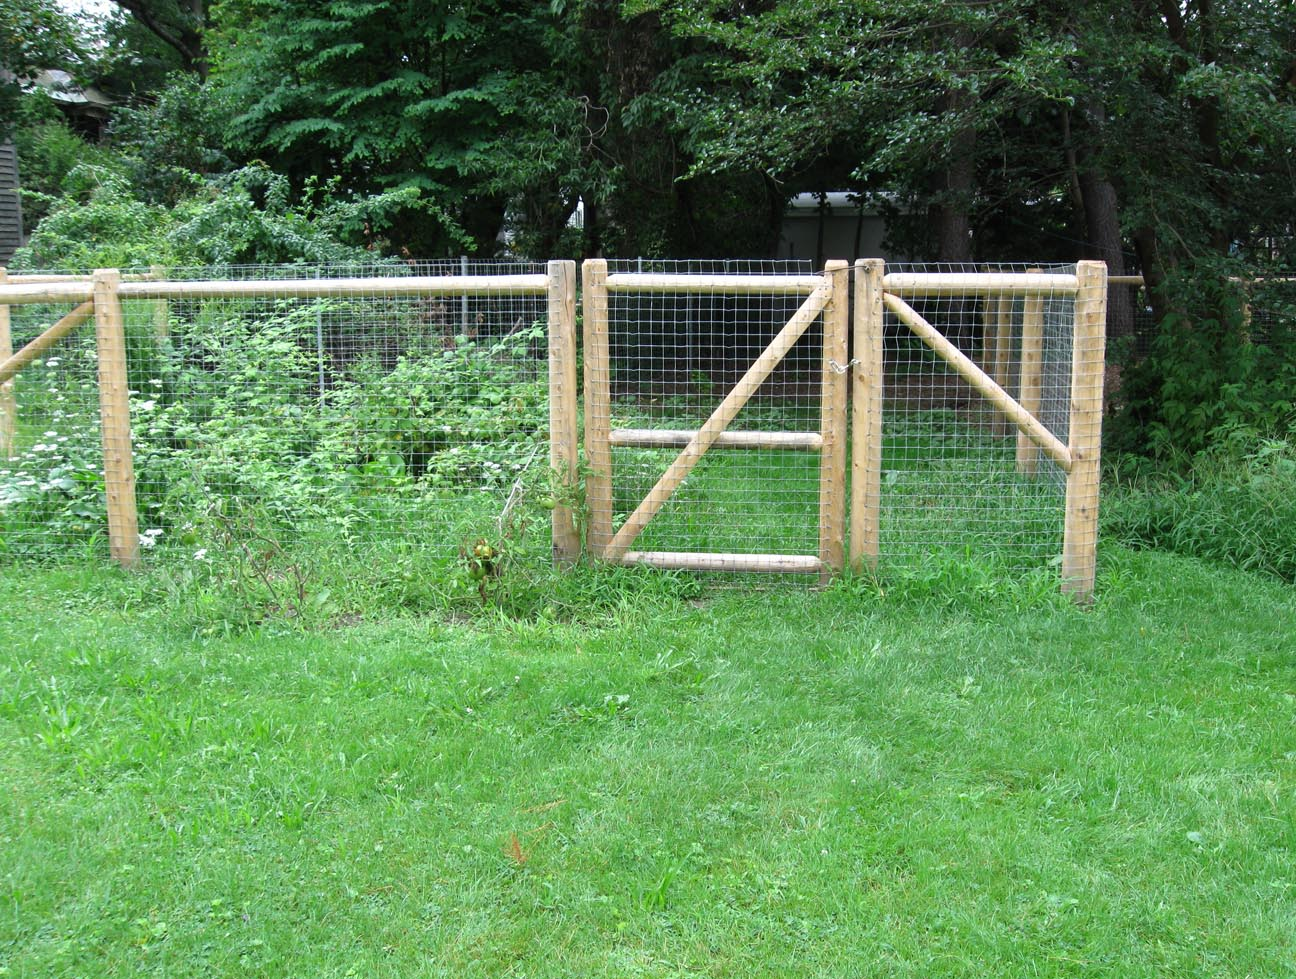 Dog Fences Outdoor Diy To Keep Your Dogs Secure Roy Home